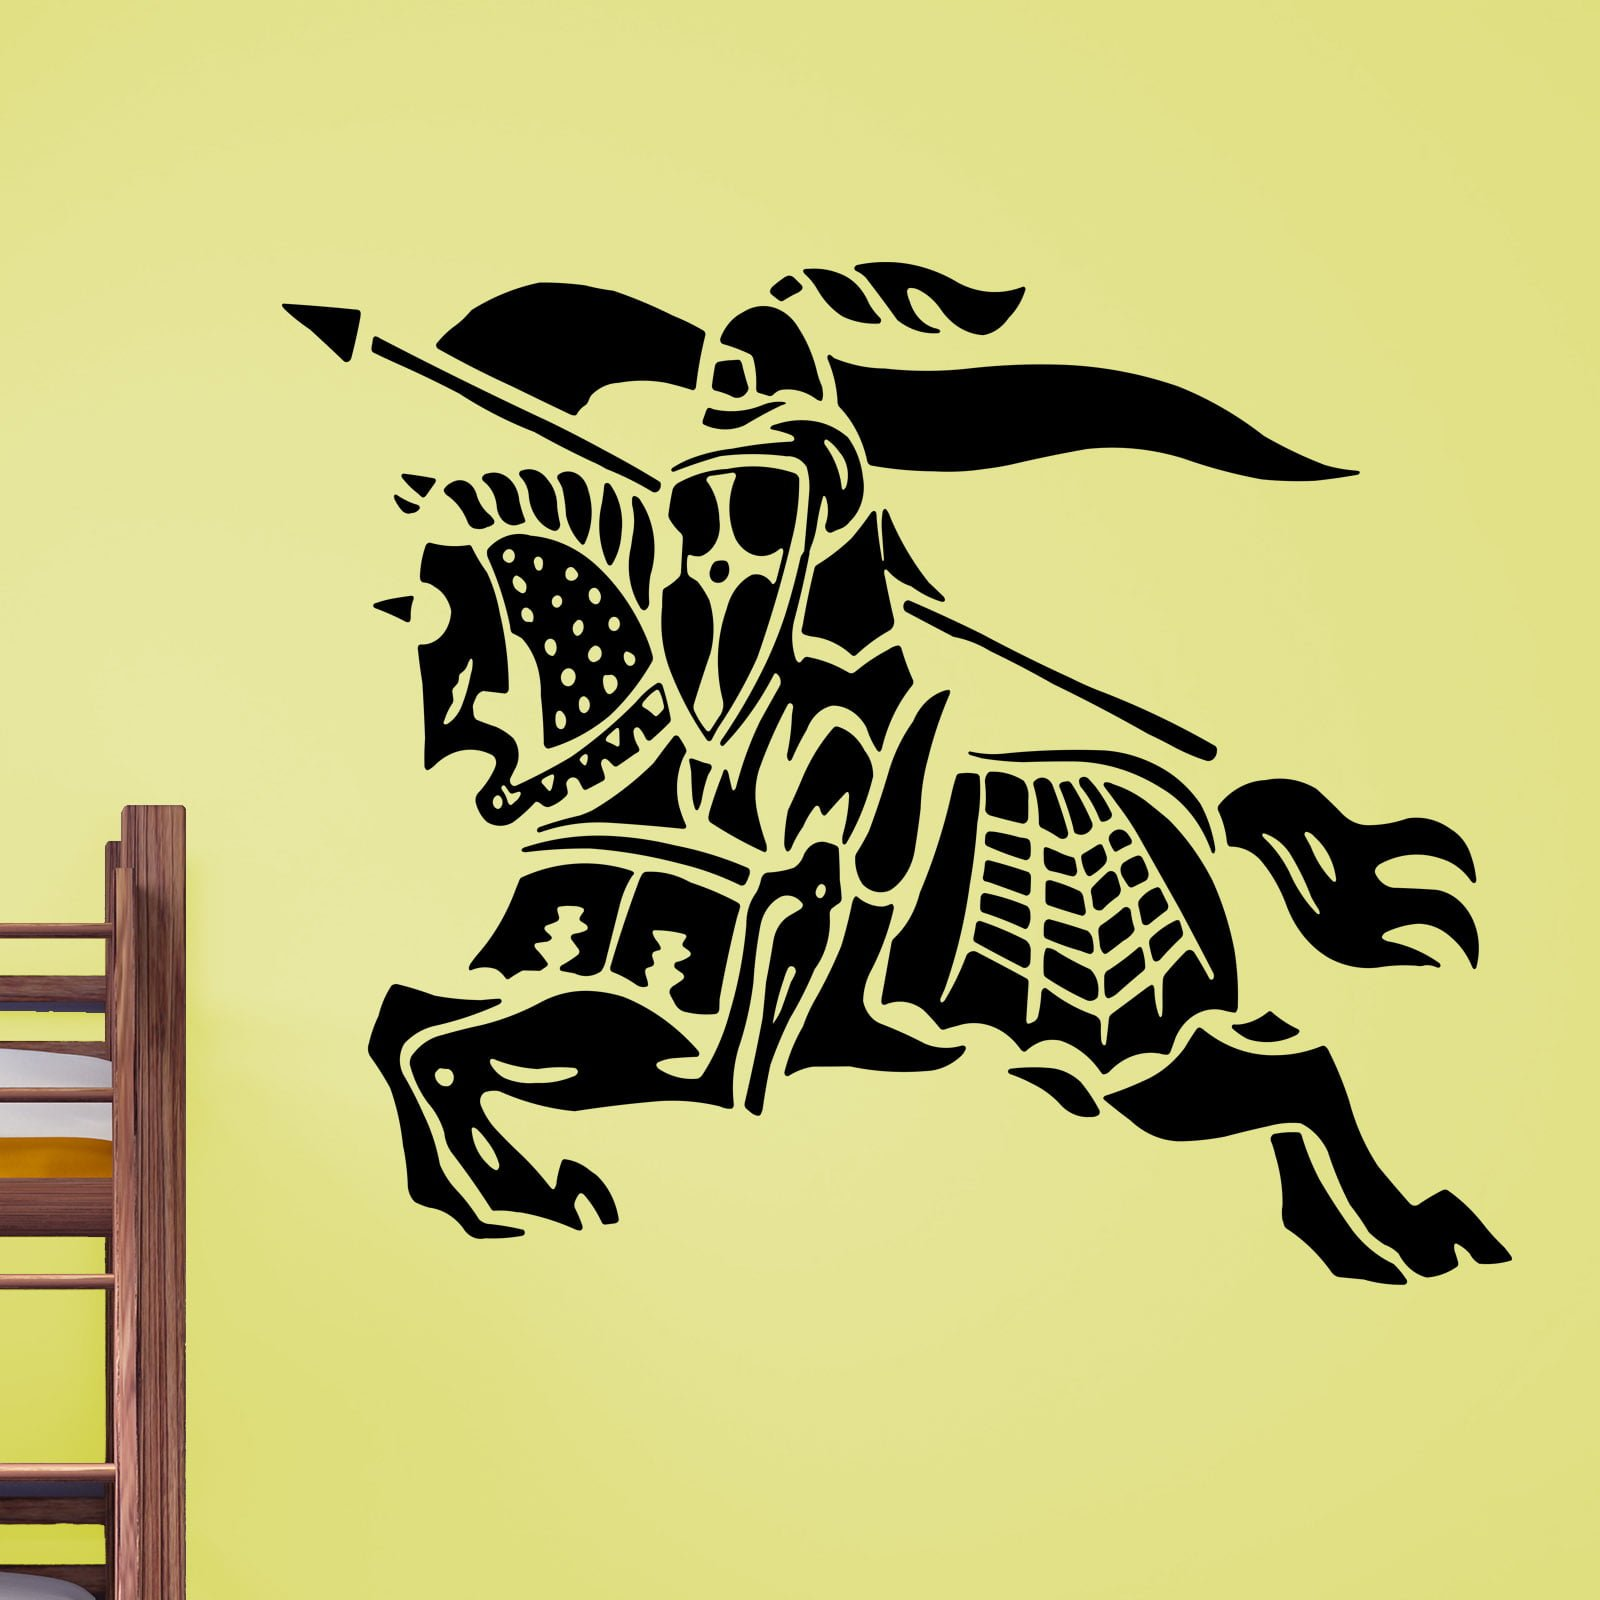 Knight Riding on his Horse Wall Sticker - World of Wall Stickers